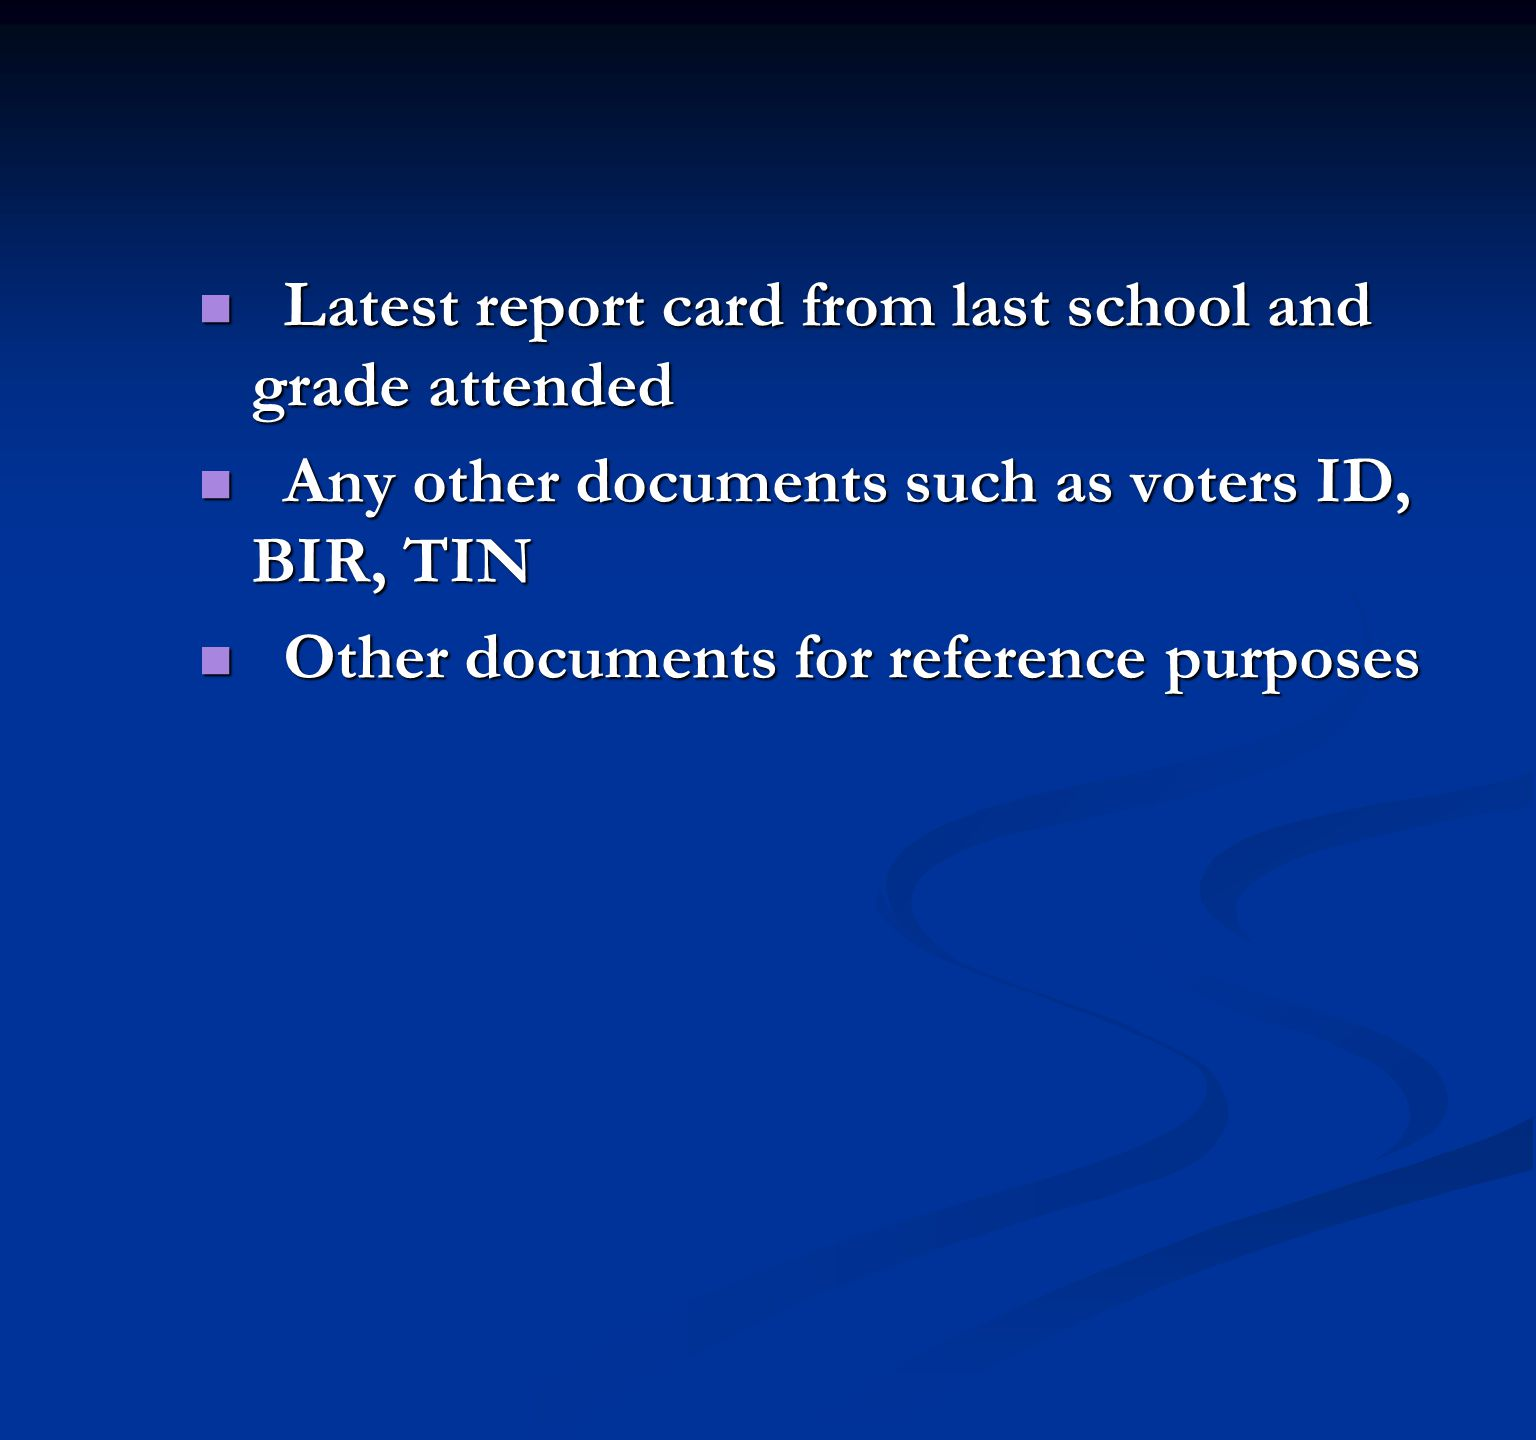 Latest report card from last school and grade attended Latest report card from last school and grade attended Any other documents such as voters ID, BIR, TIN Any other documents such as voters ID, BIR, TIN Other documents for reference purposes Other documents for reference purposes